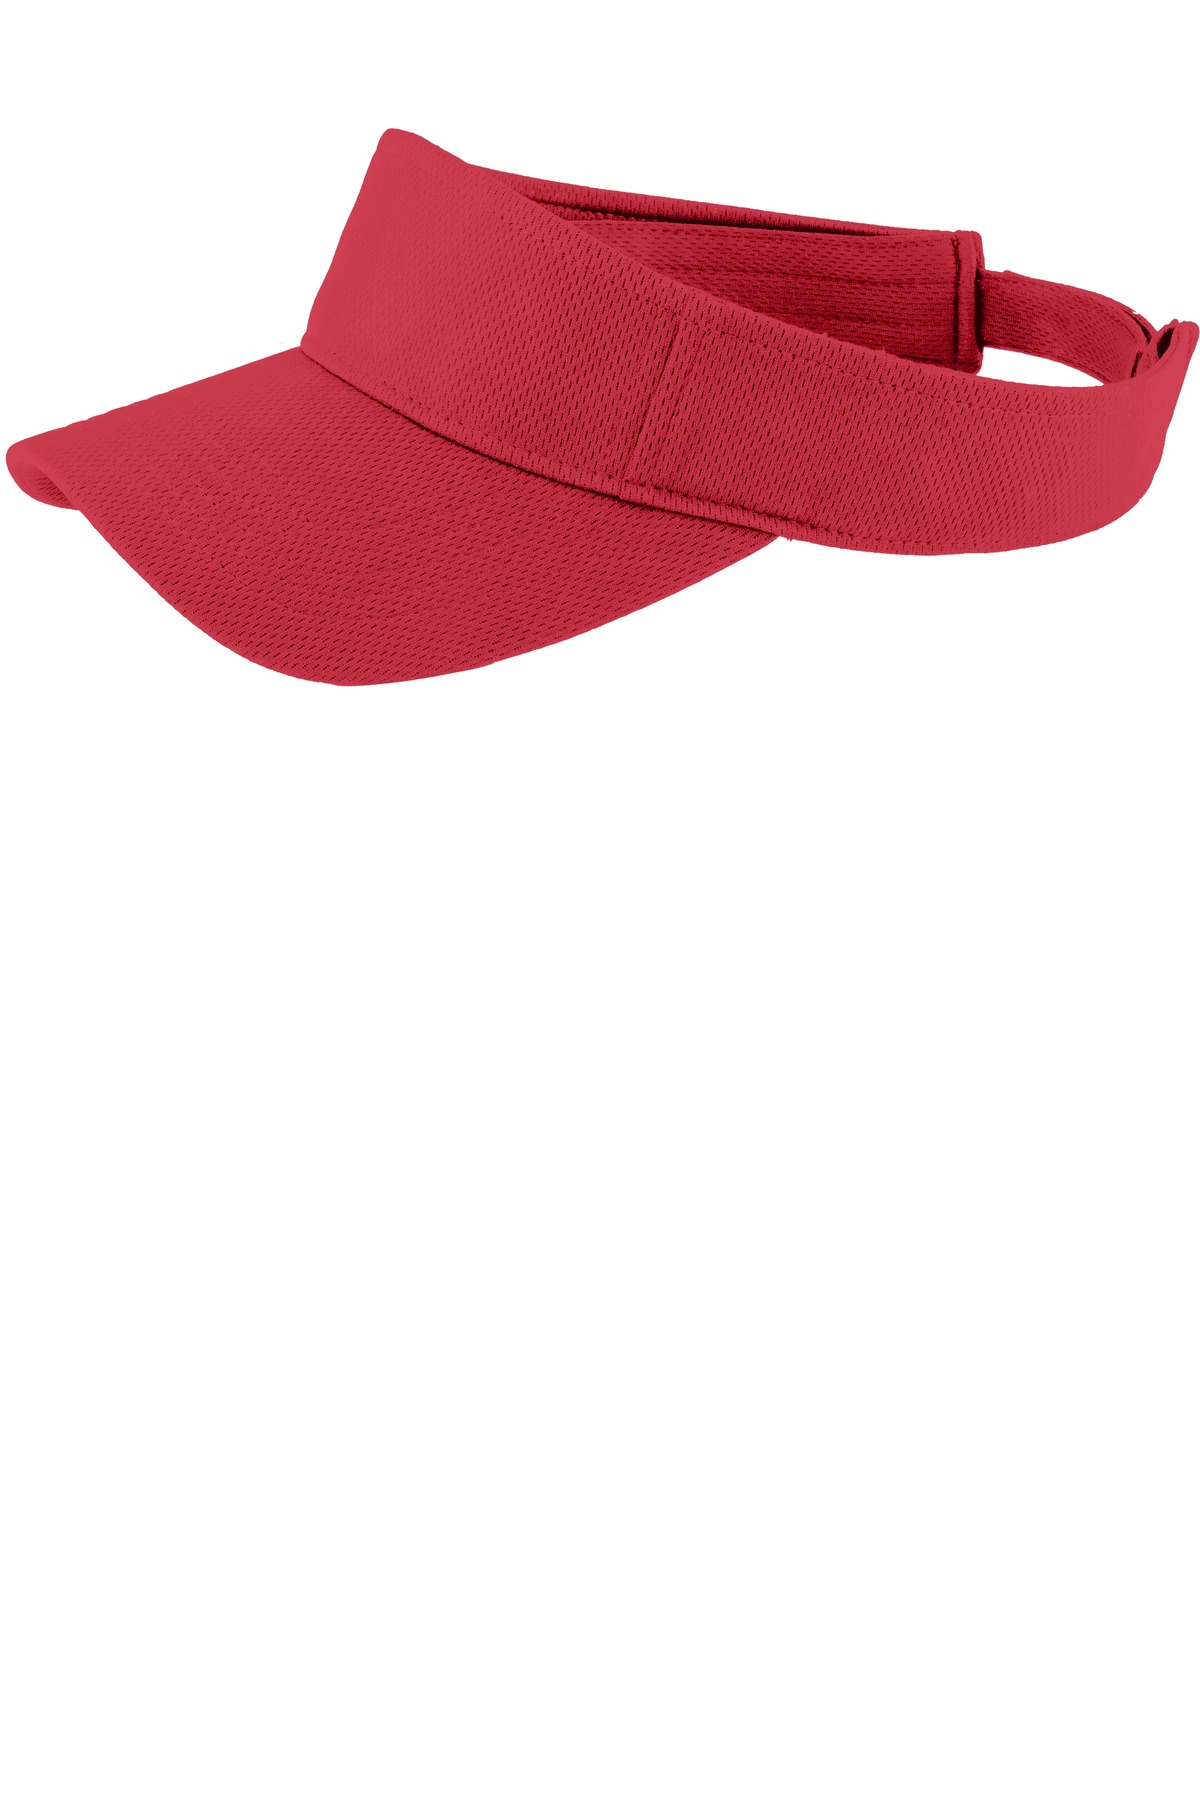 Sport-Tek ®  PosiCharge ®  RacerMesh ®  Visor.  STC27 - True Red